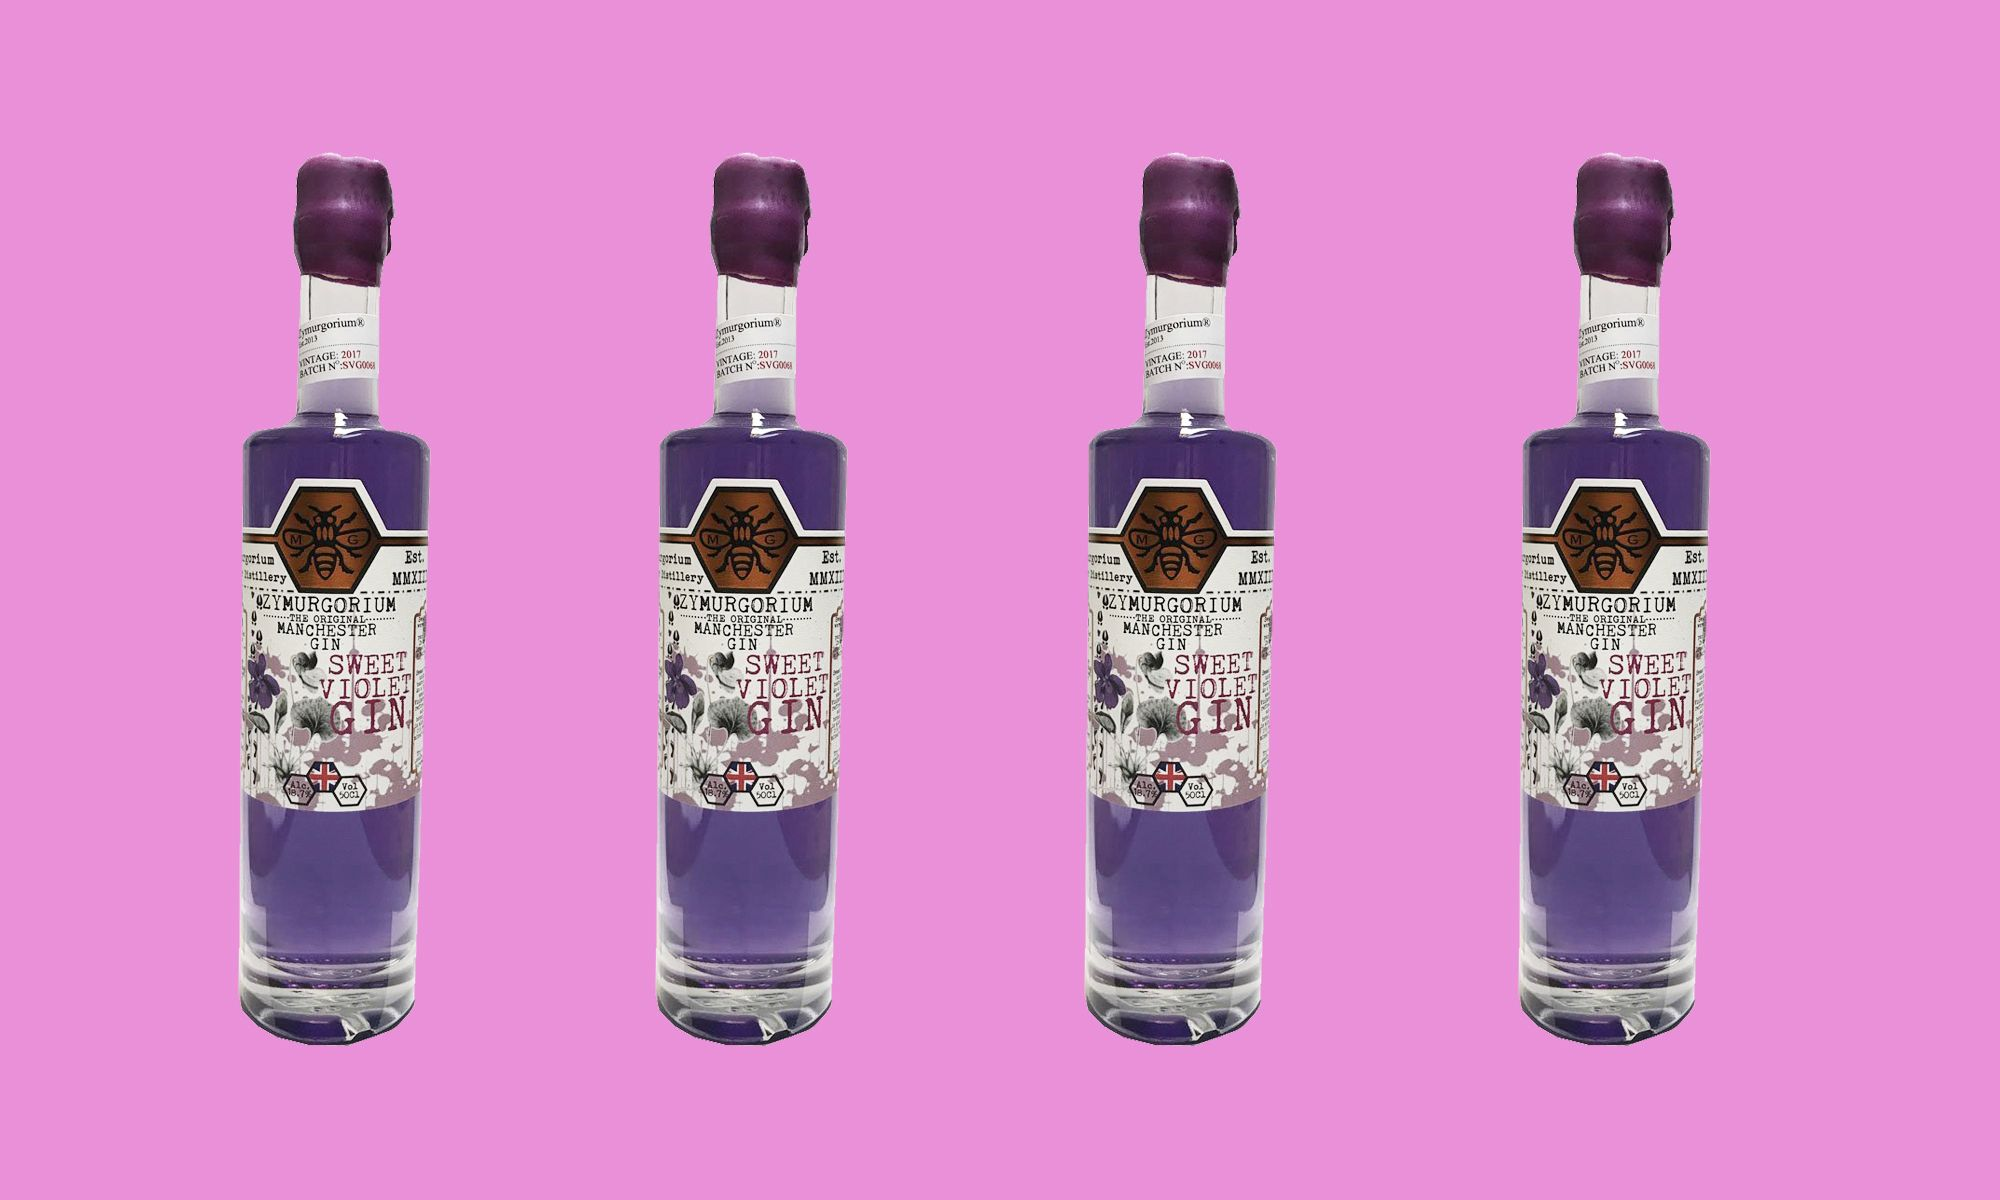 This little-known violet gin is Amazon's number one bestseller